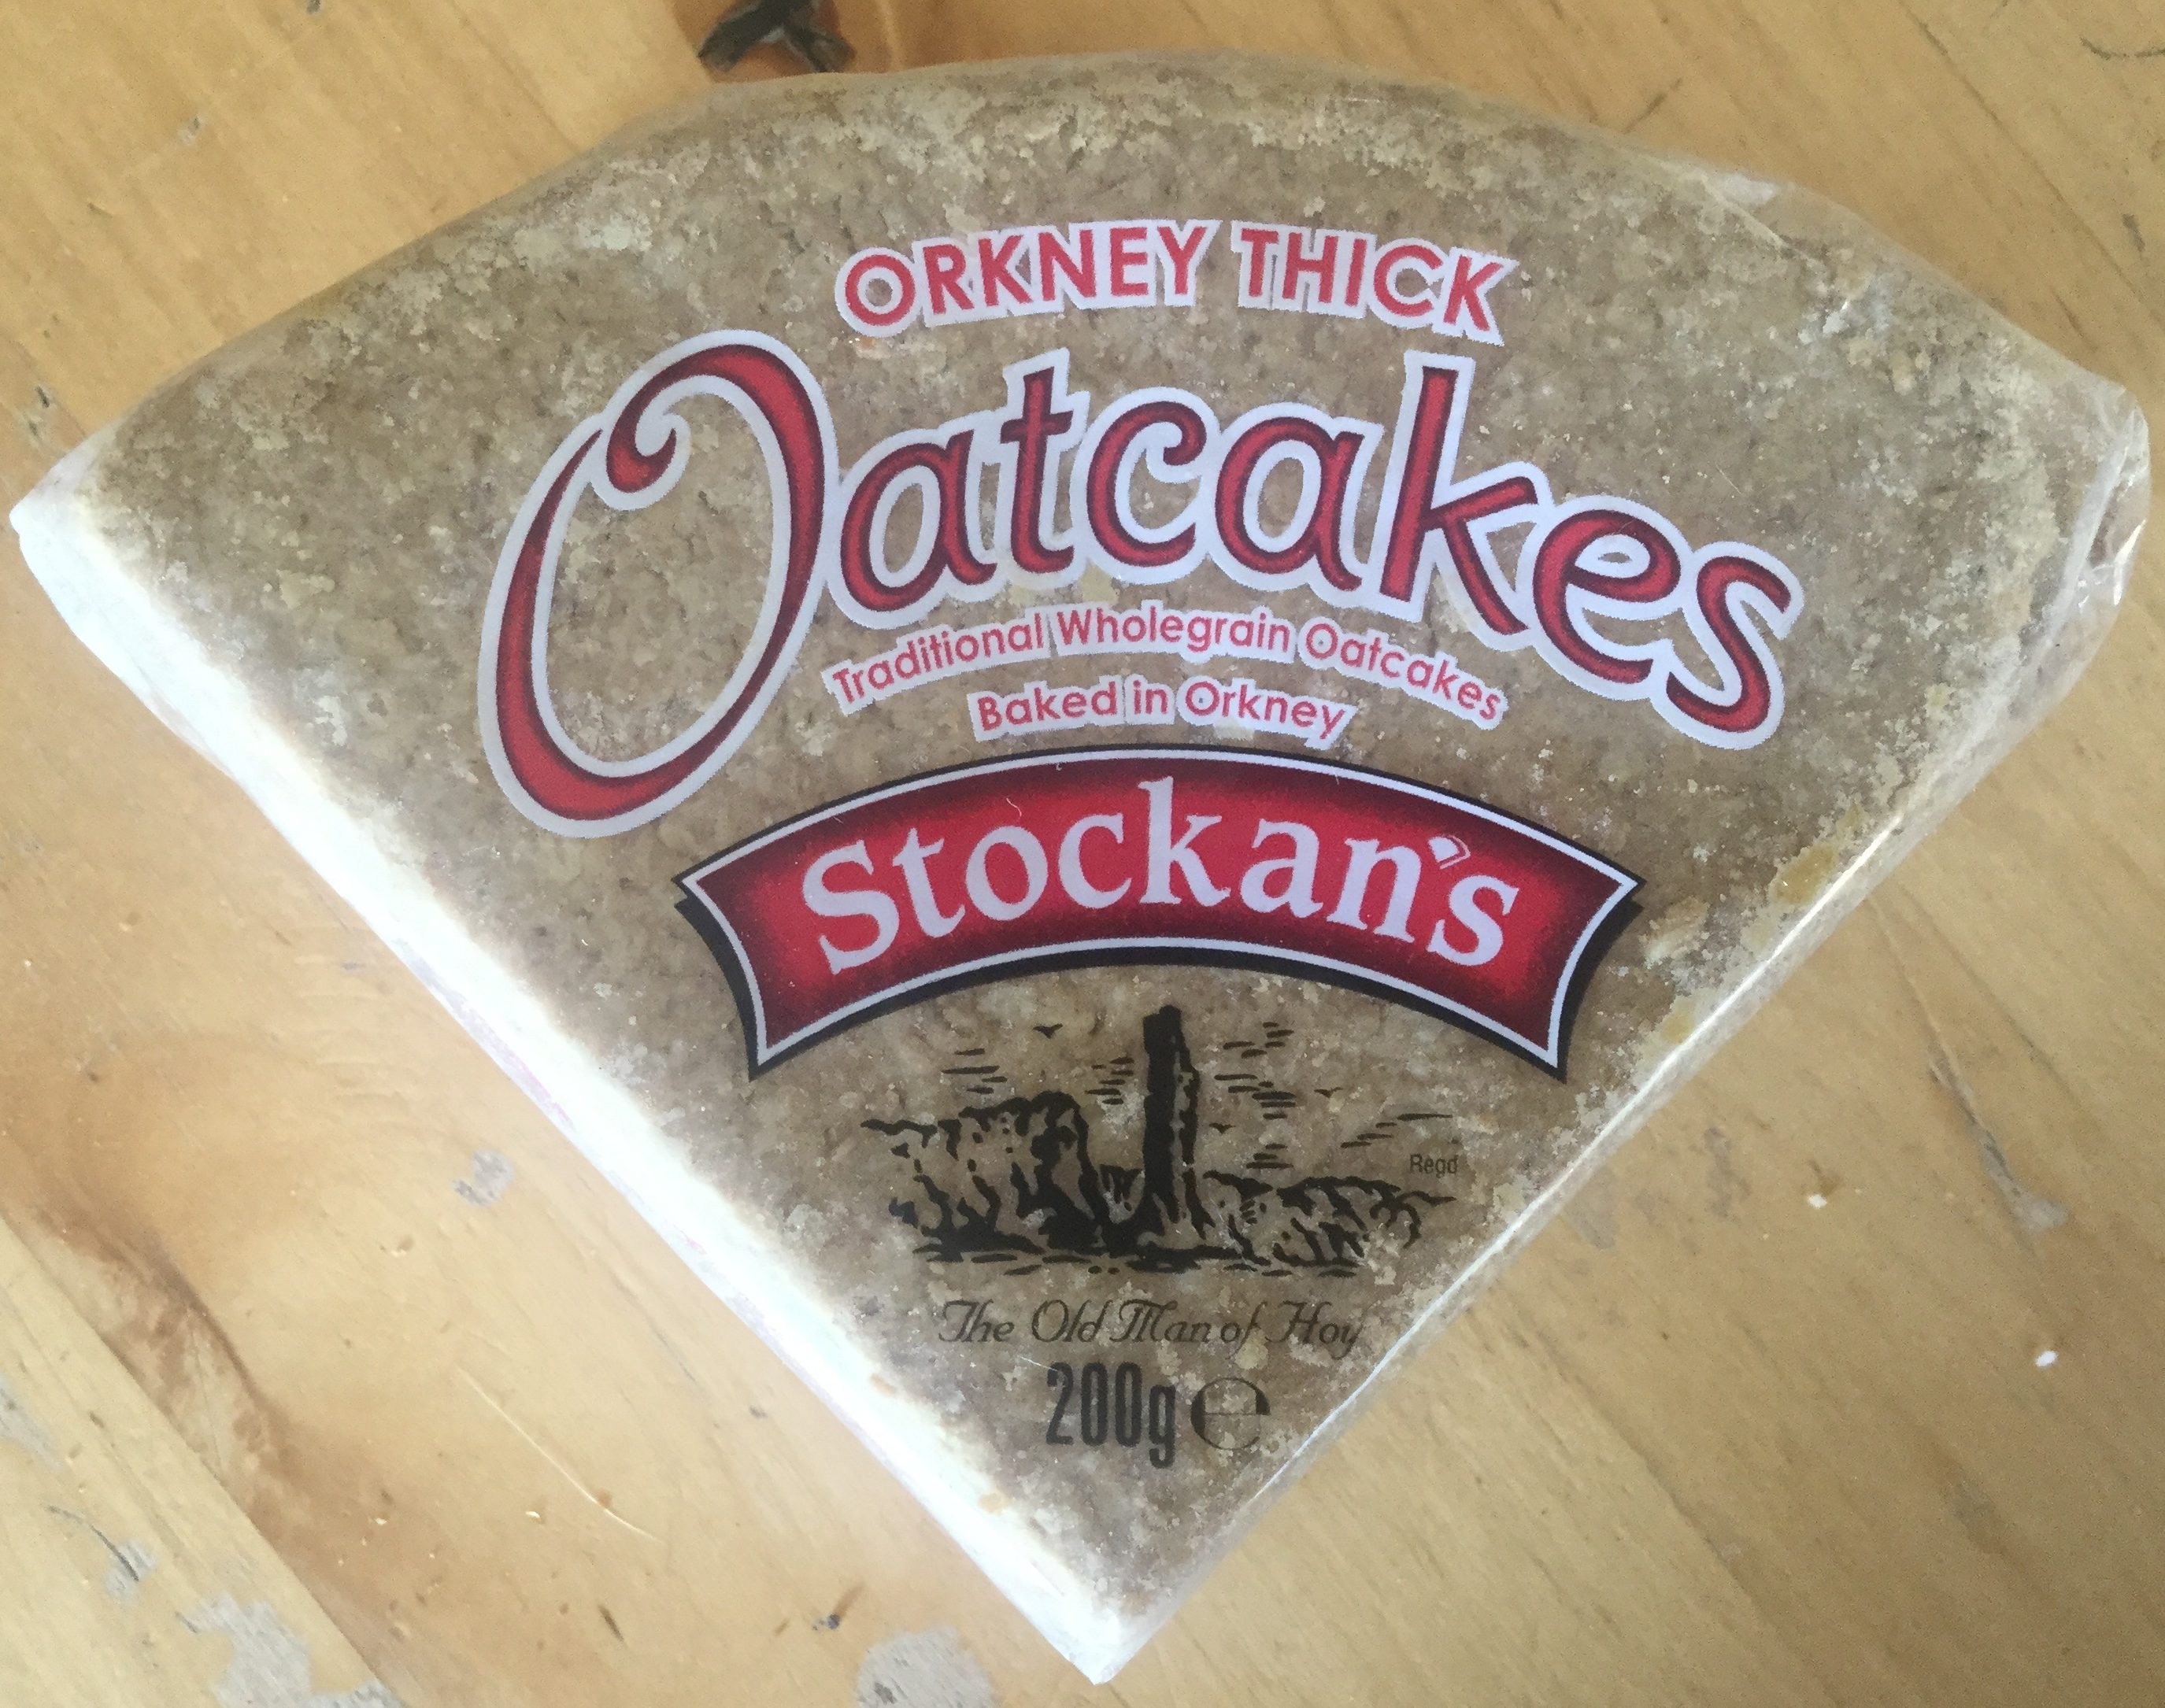 Orkney thick oatcakes - Product - en